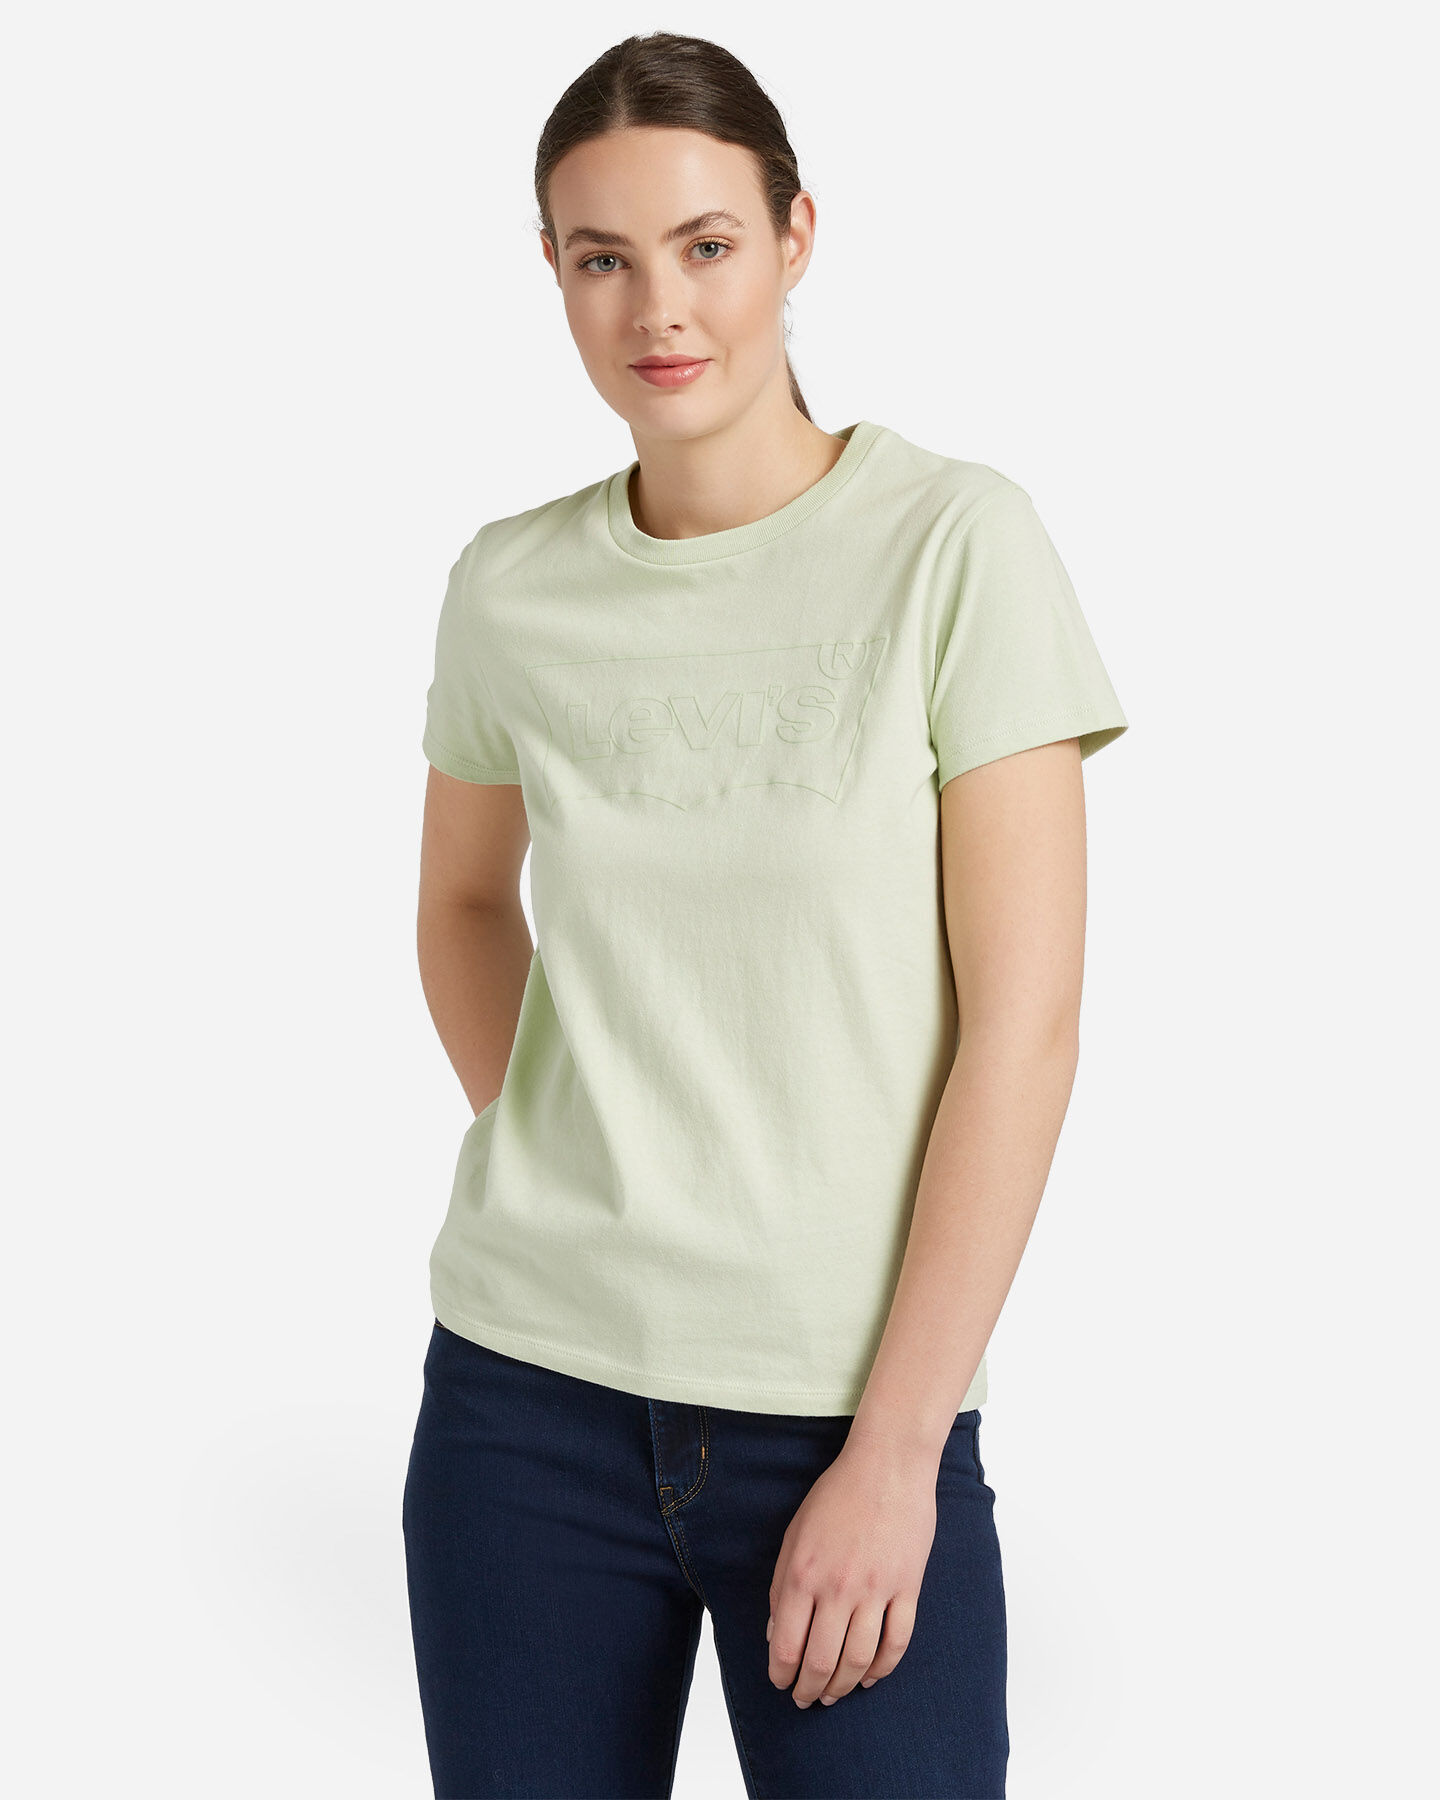 T-Shirt LEVI'S LOGO BATWING OUTLINE W S4088775 scatto 0